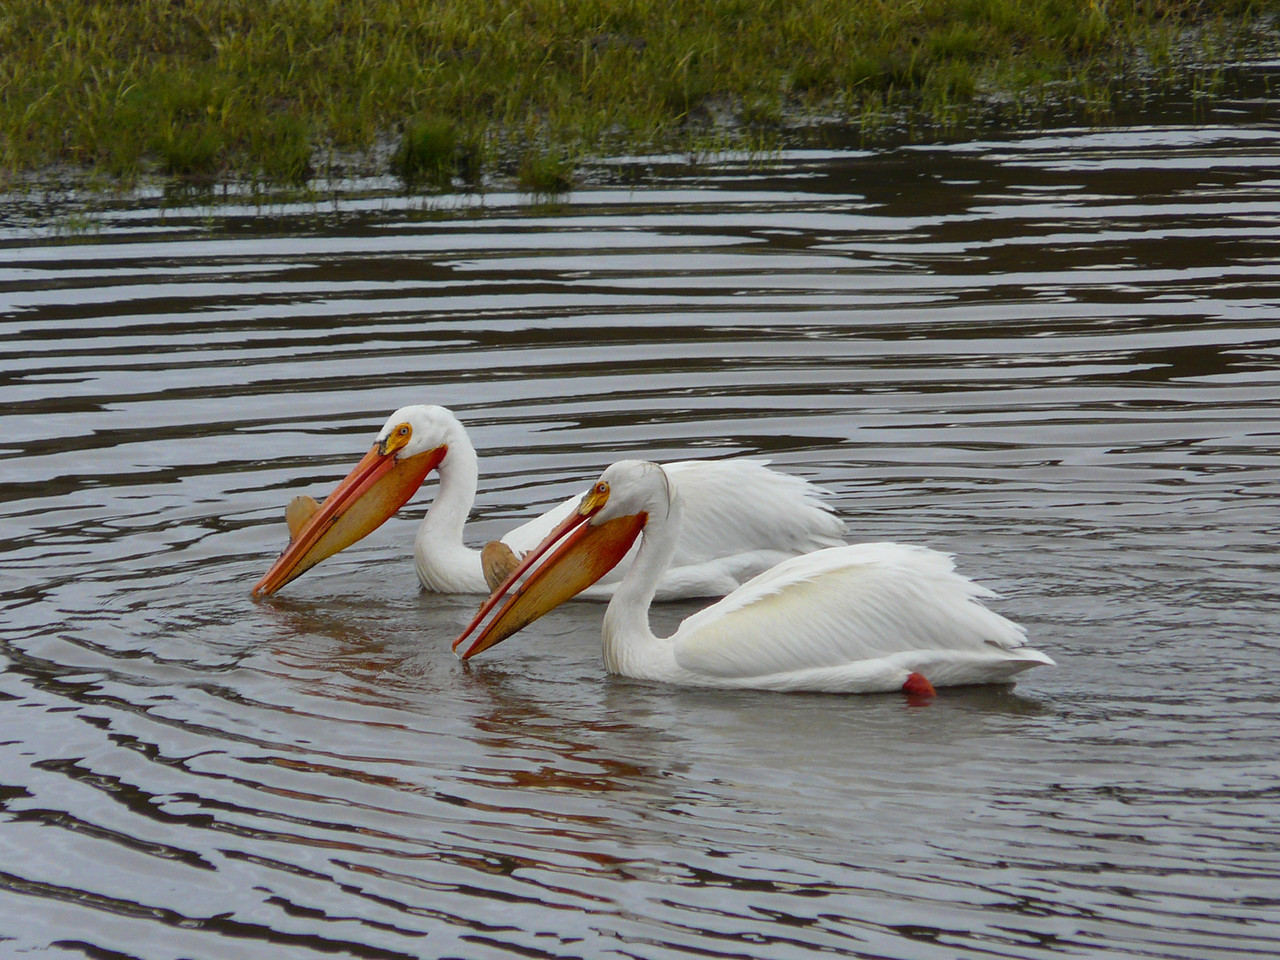 American Pelican on the Yellowstone River - Yellowstone National Park